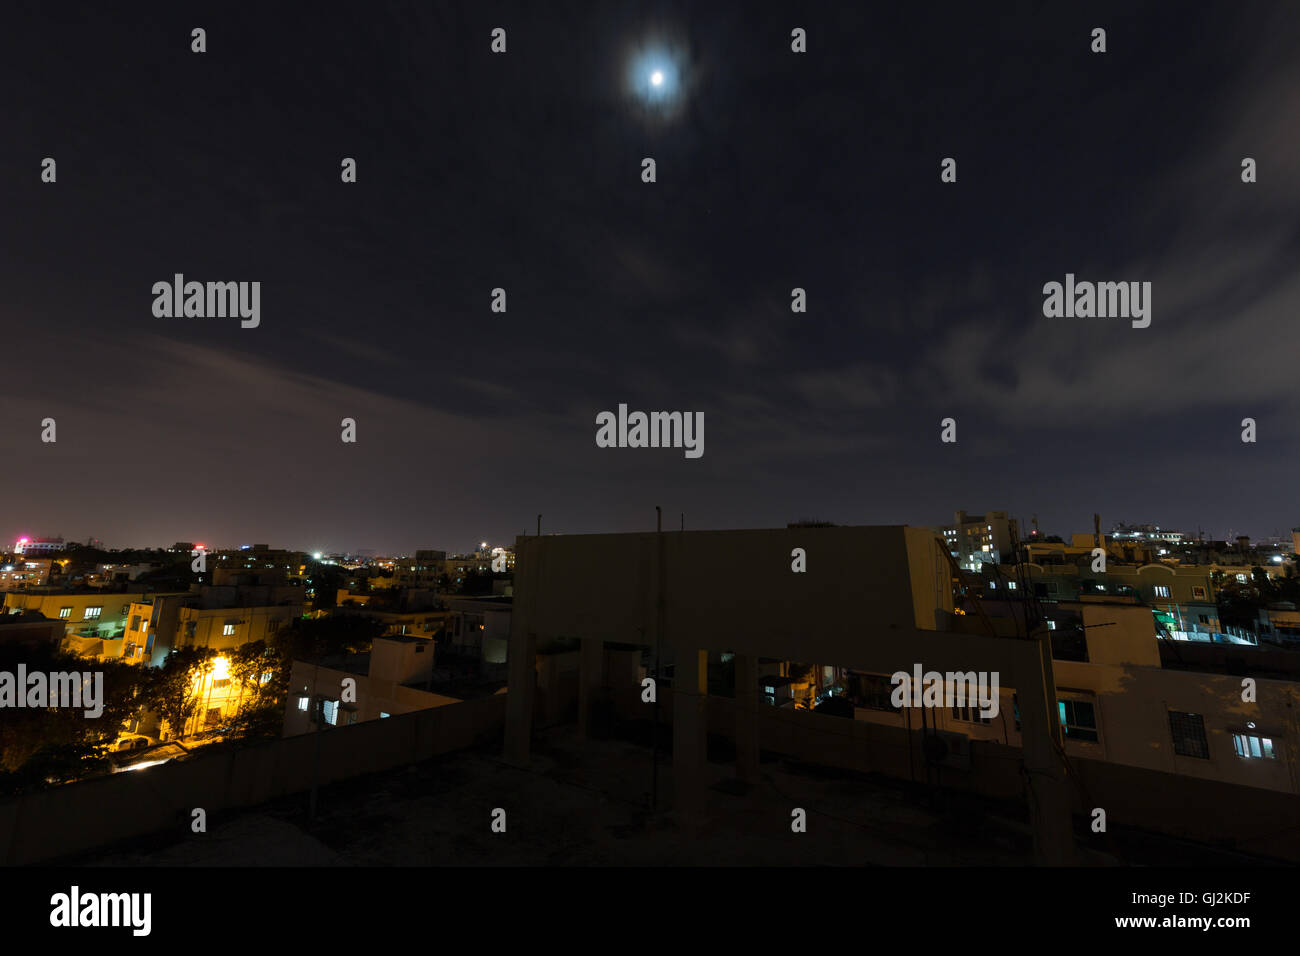 Hyderabad rooftop view at night - Stock Image